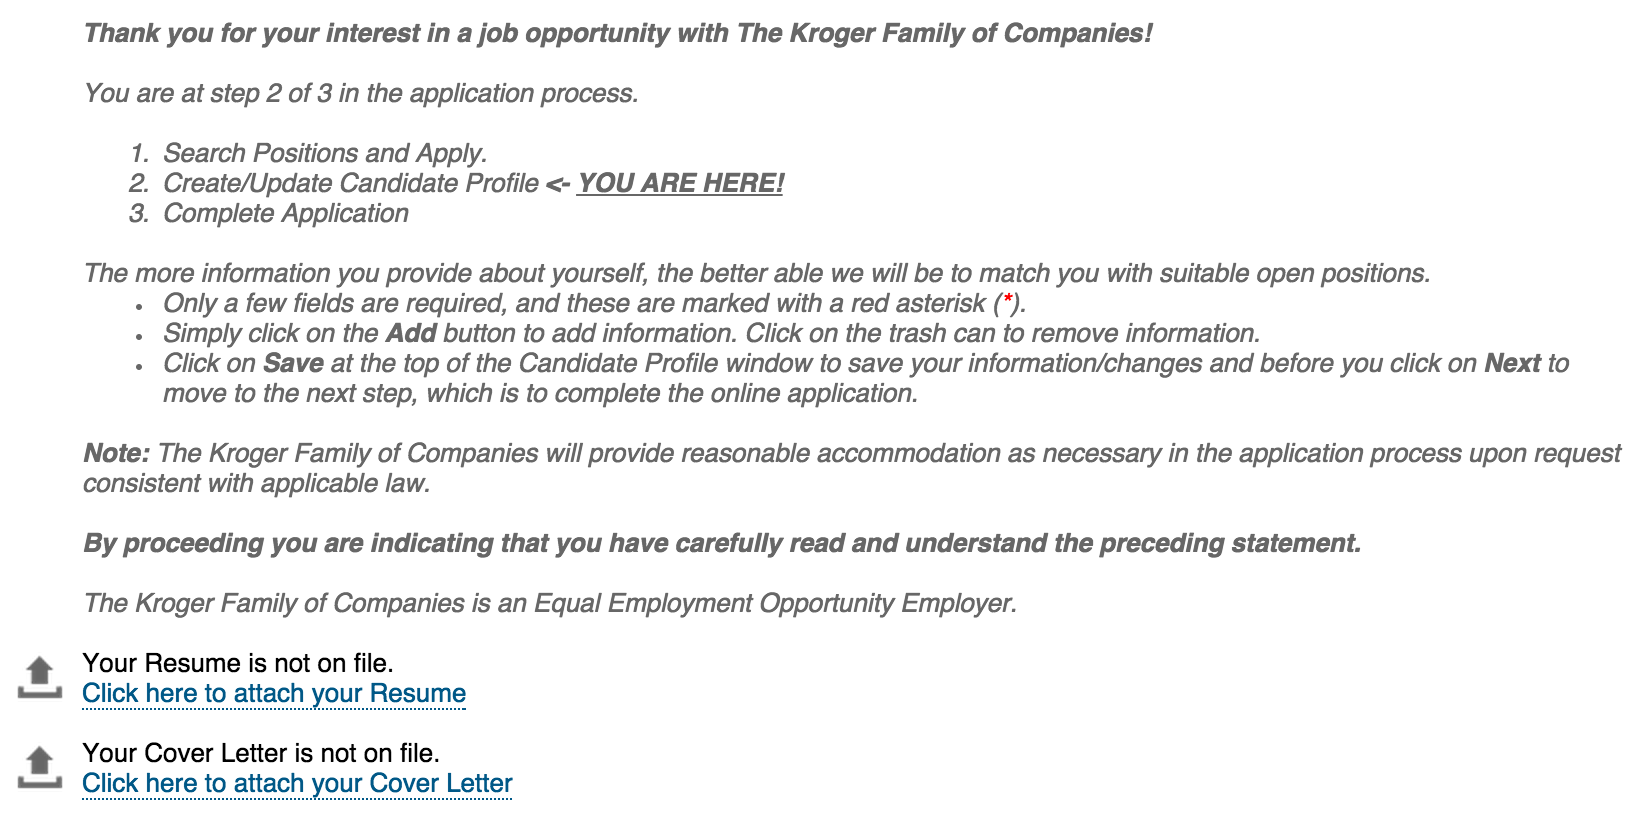 Kroger Job Application Form Pdf S Net Screen Shot 2015 04 24 At 4 08 45